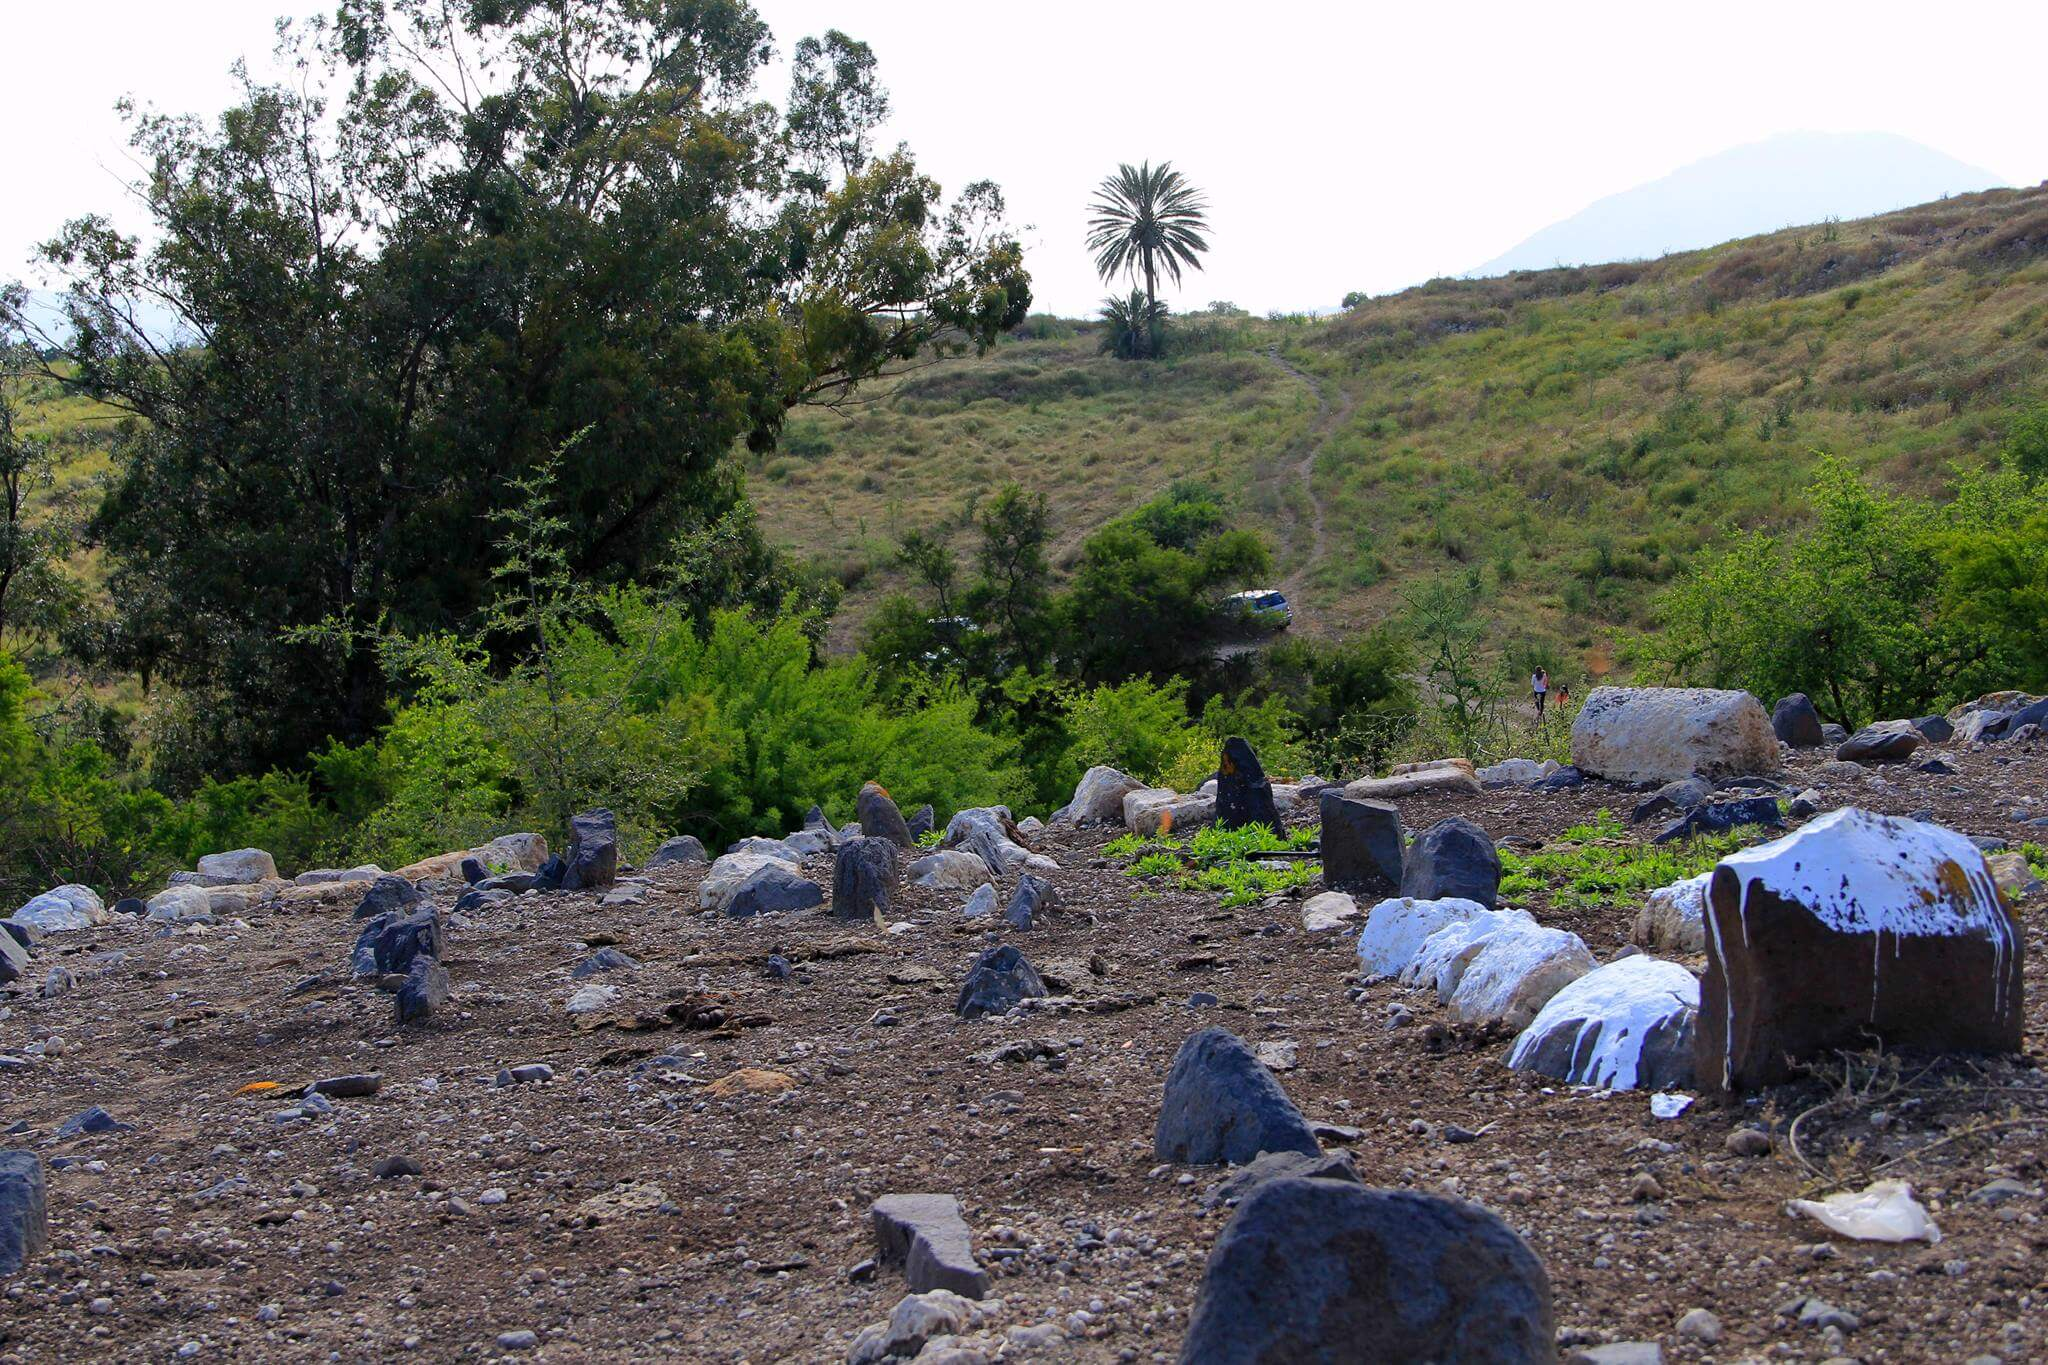 Scattered remains of the village of Hadatha. (Photo: Tarek Bakri)